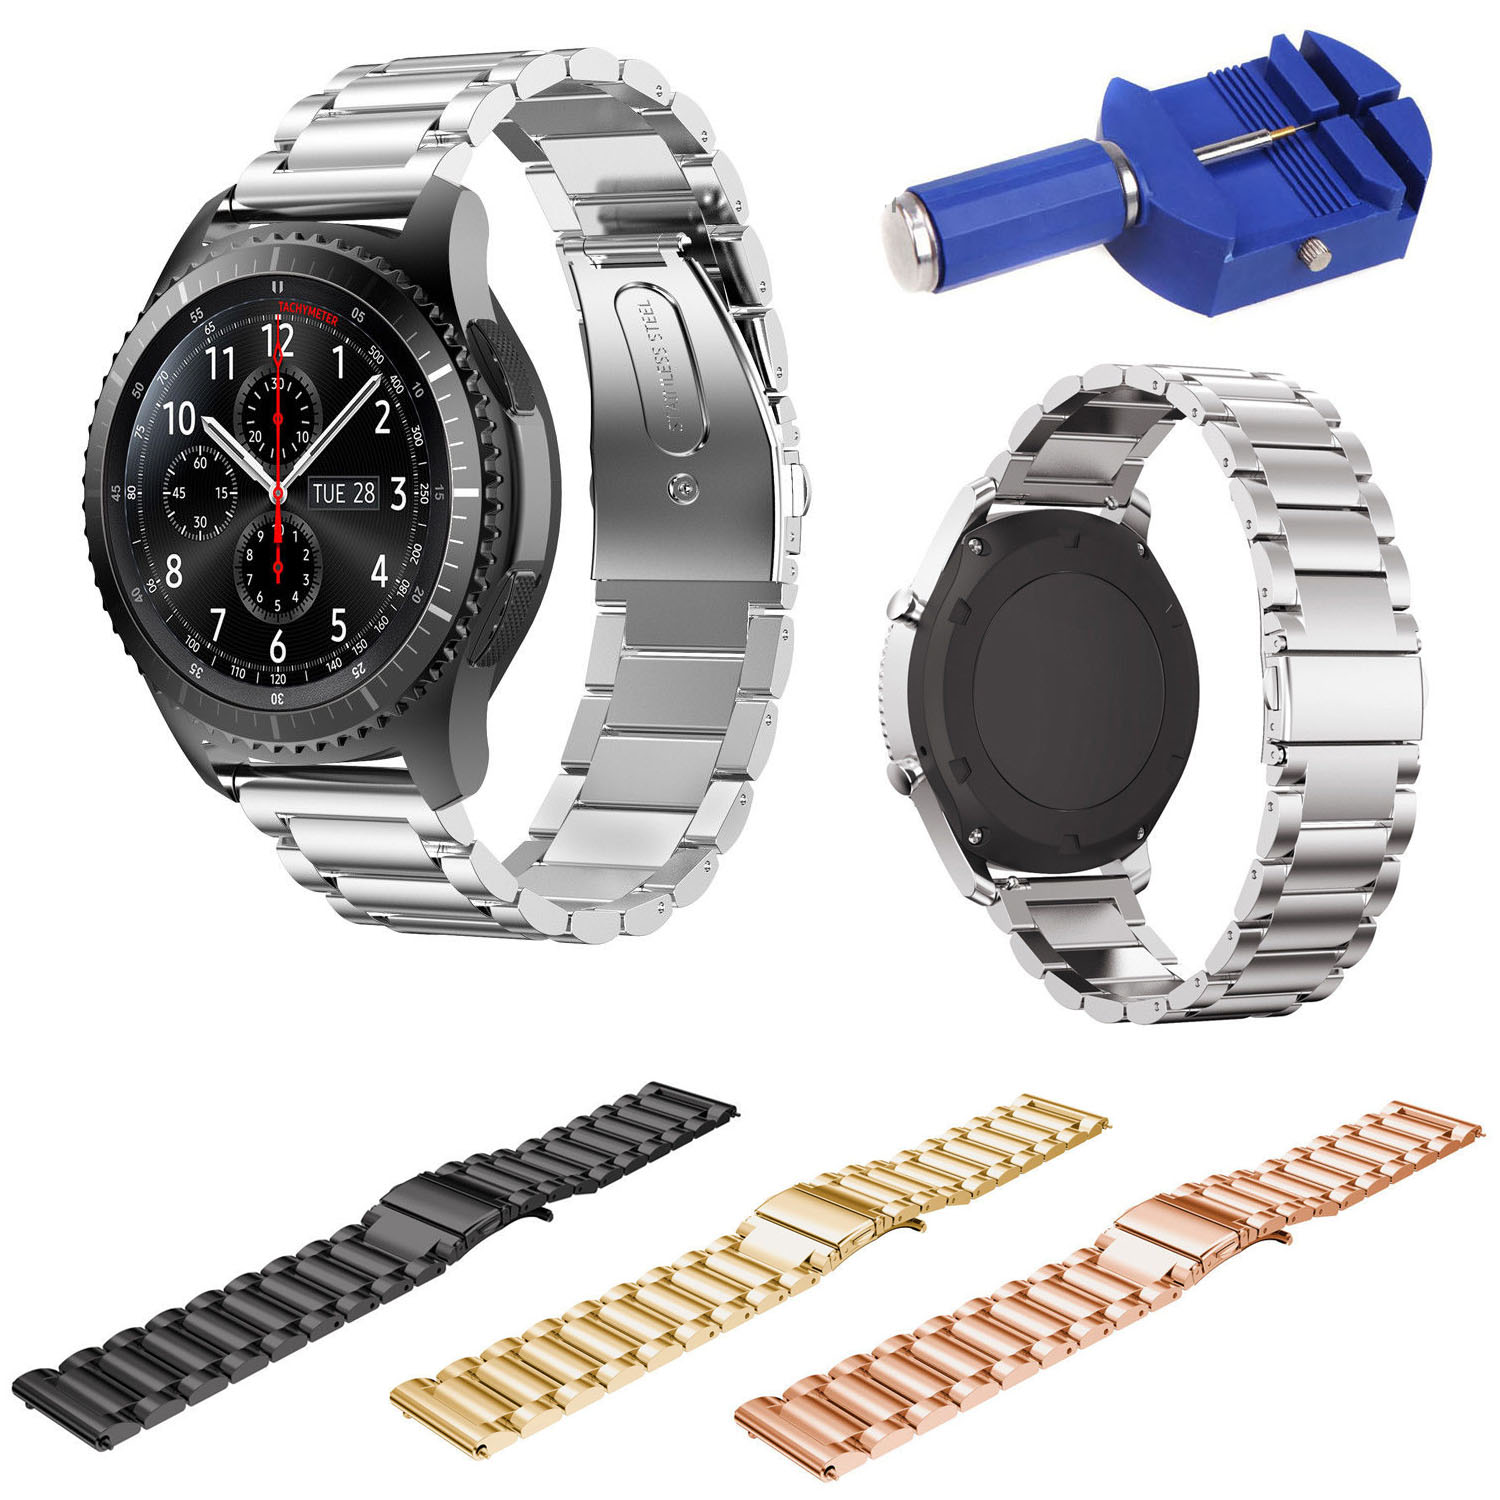 For Samsung Gear S3 Smart Watch Metal Strap 3 Beads Stainless Steel Band For S3 Frontier